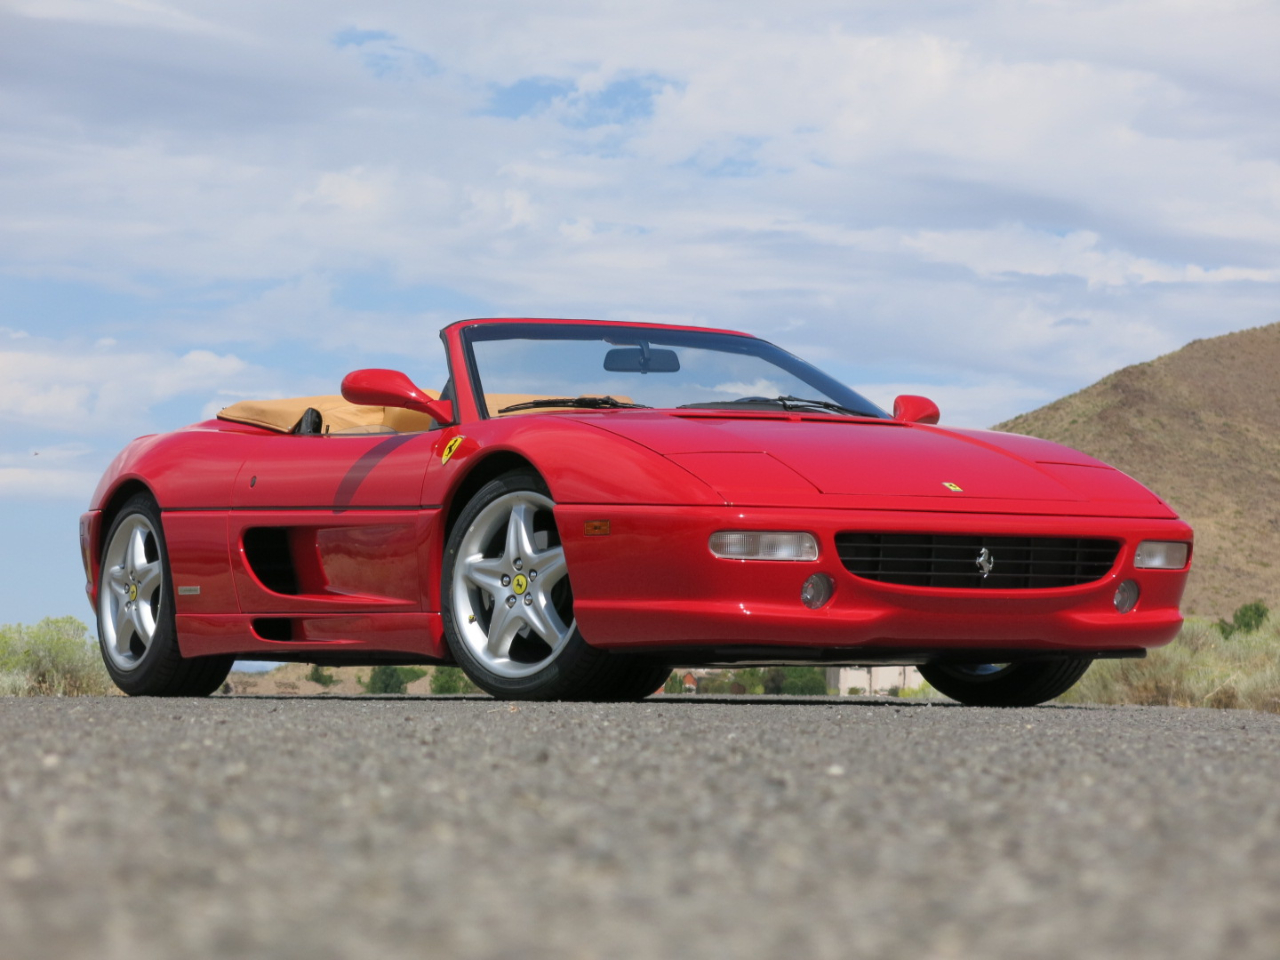 Ferrari F355 1998 for Sale in Reno, NV